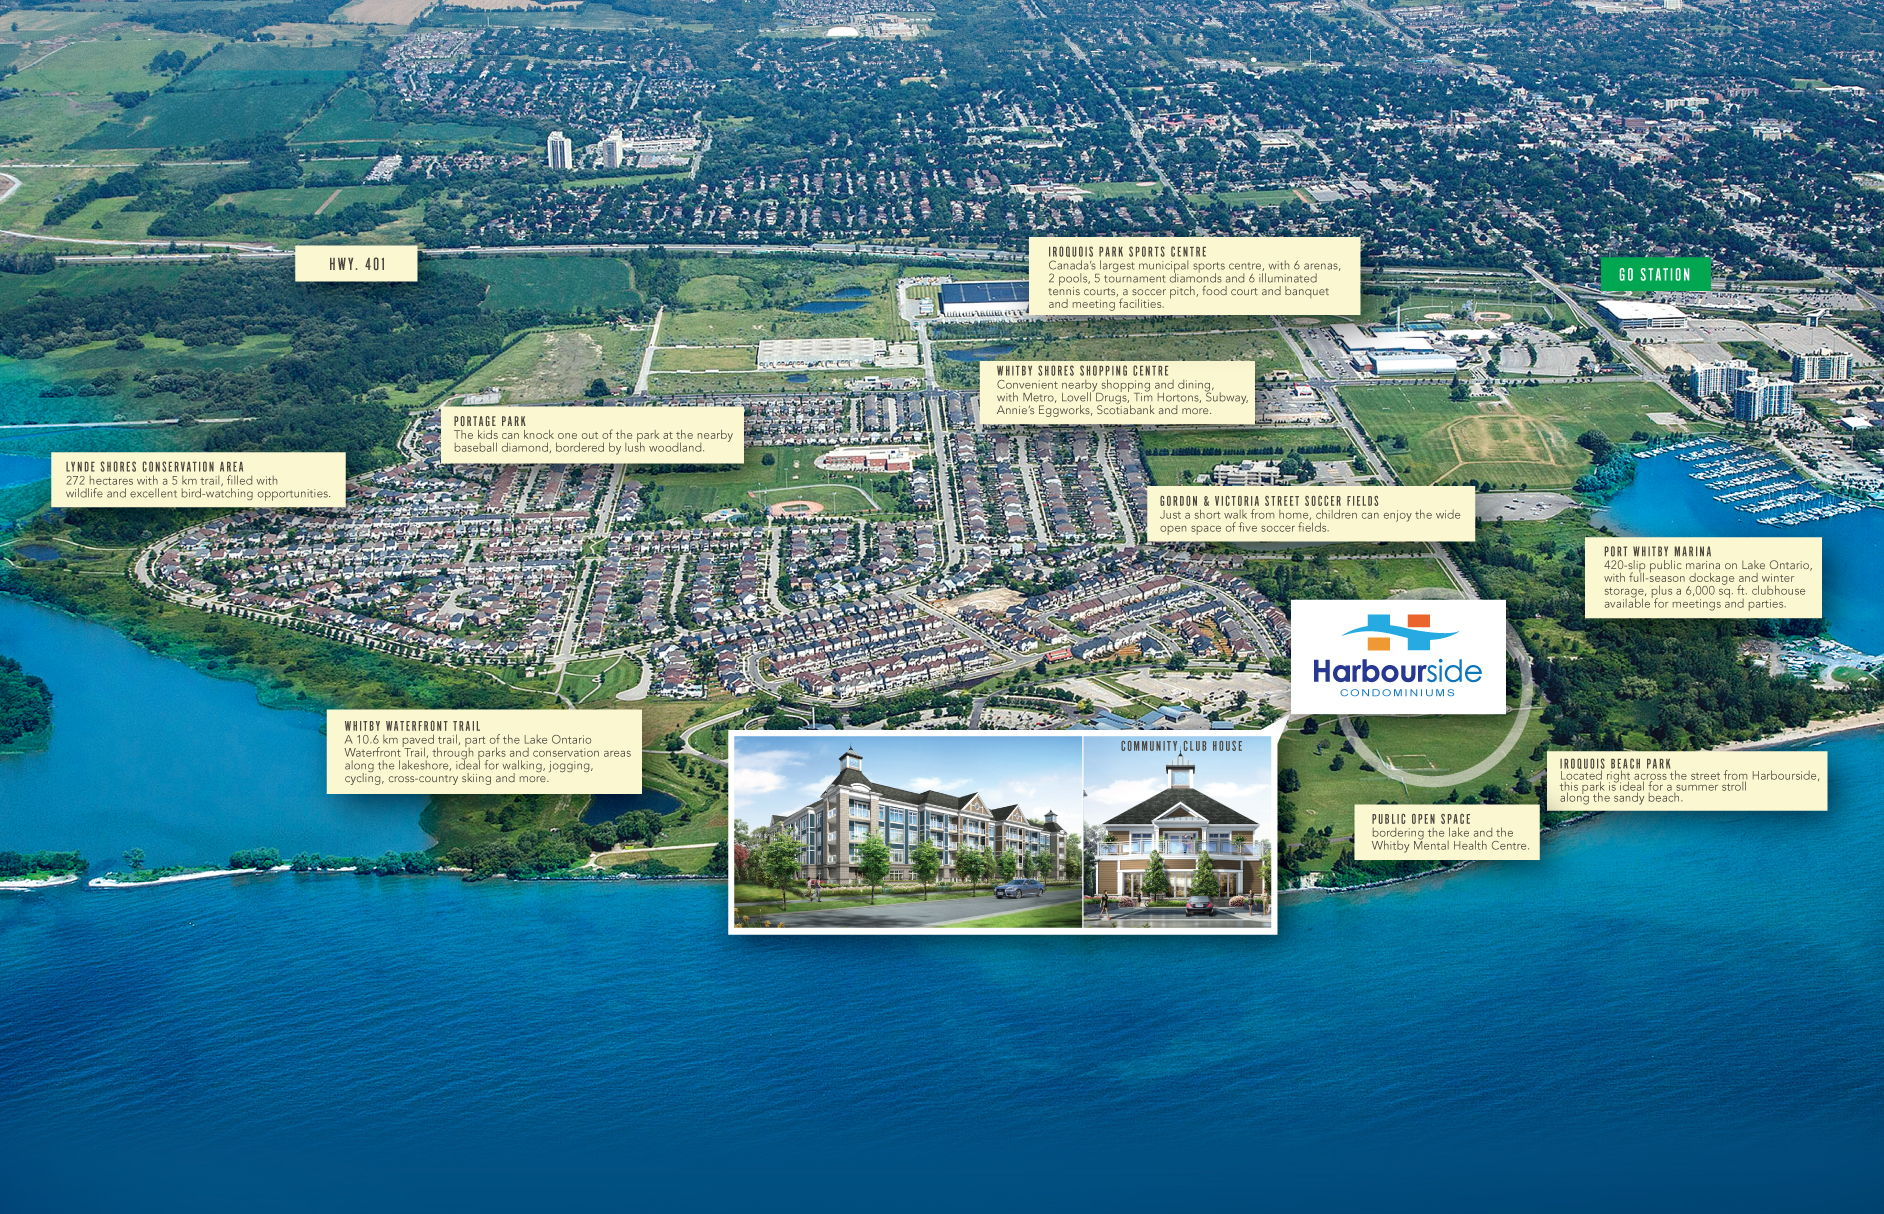 Site plan for Harbourside in Whitby, Ontario